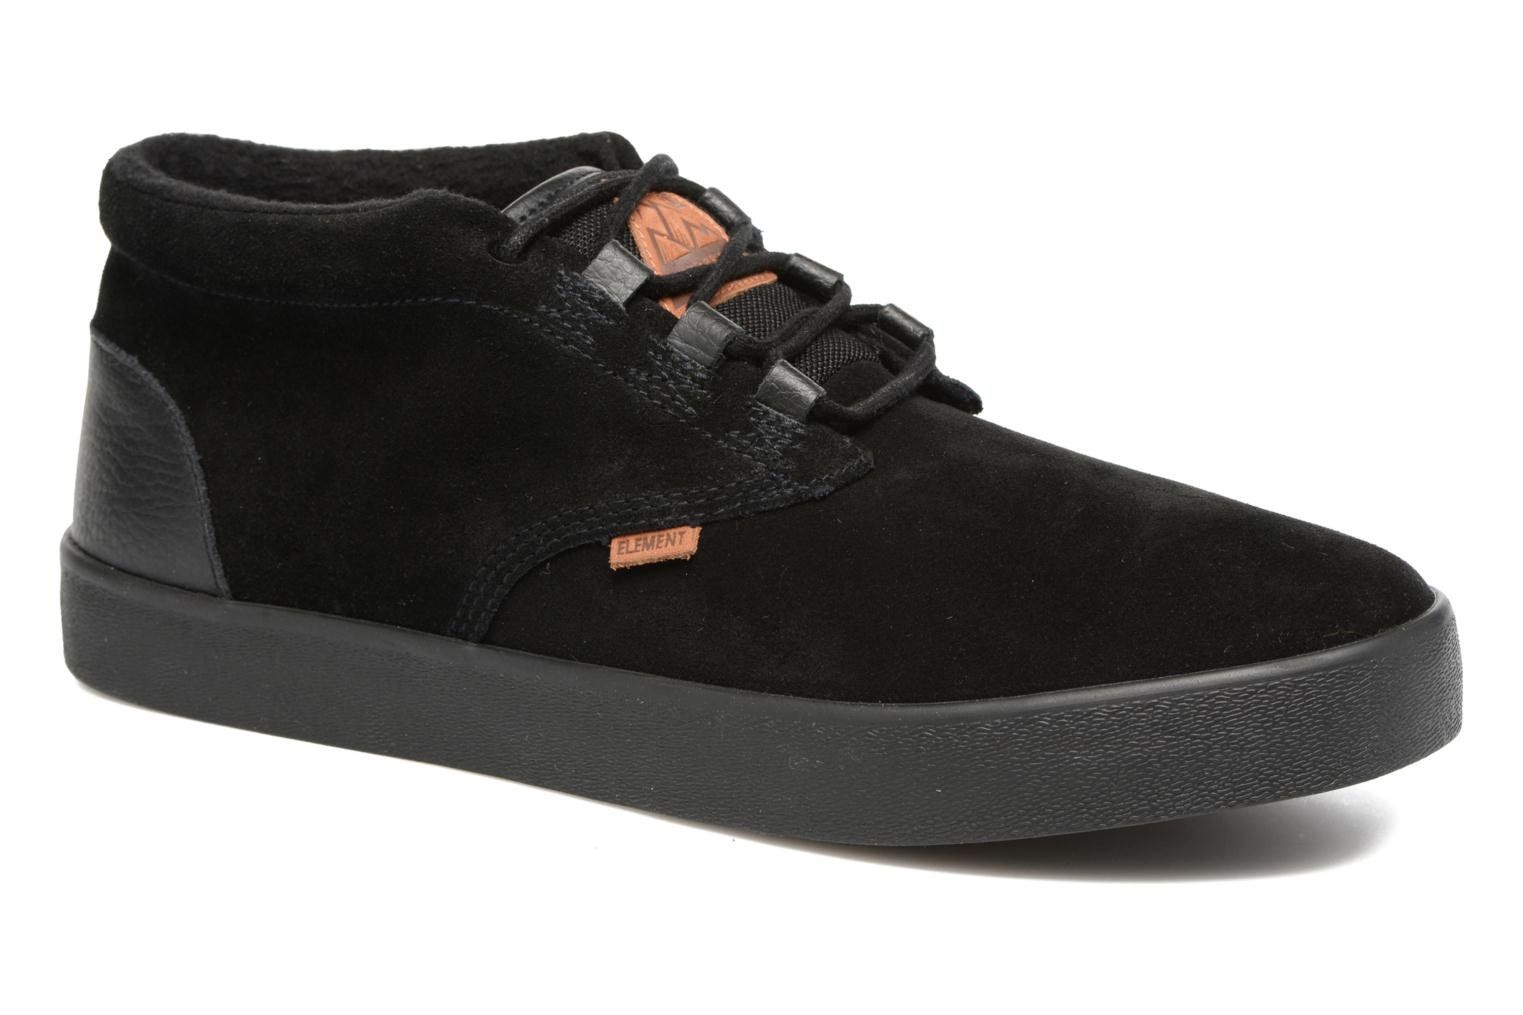 Element Preston Baskets Sneakers - - Black Amber JVVKDV6,